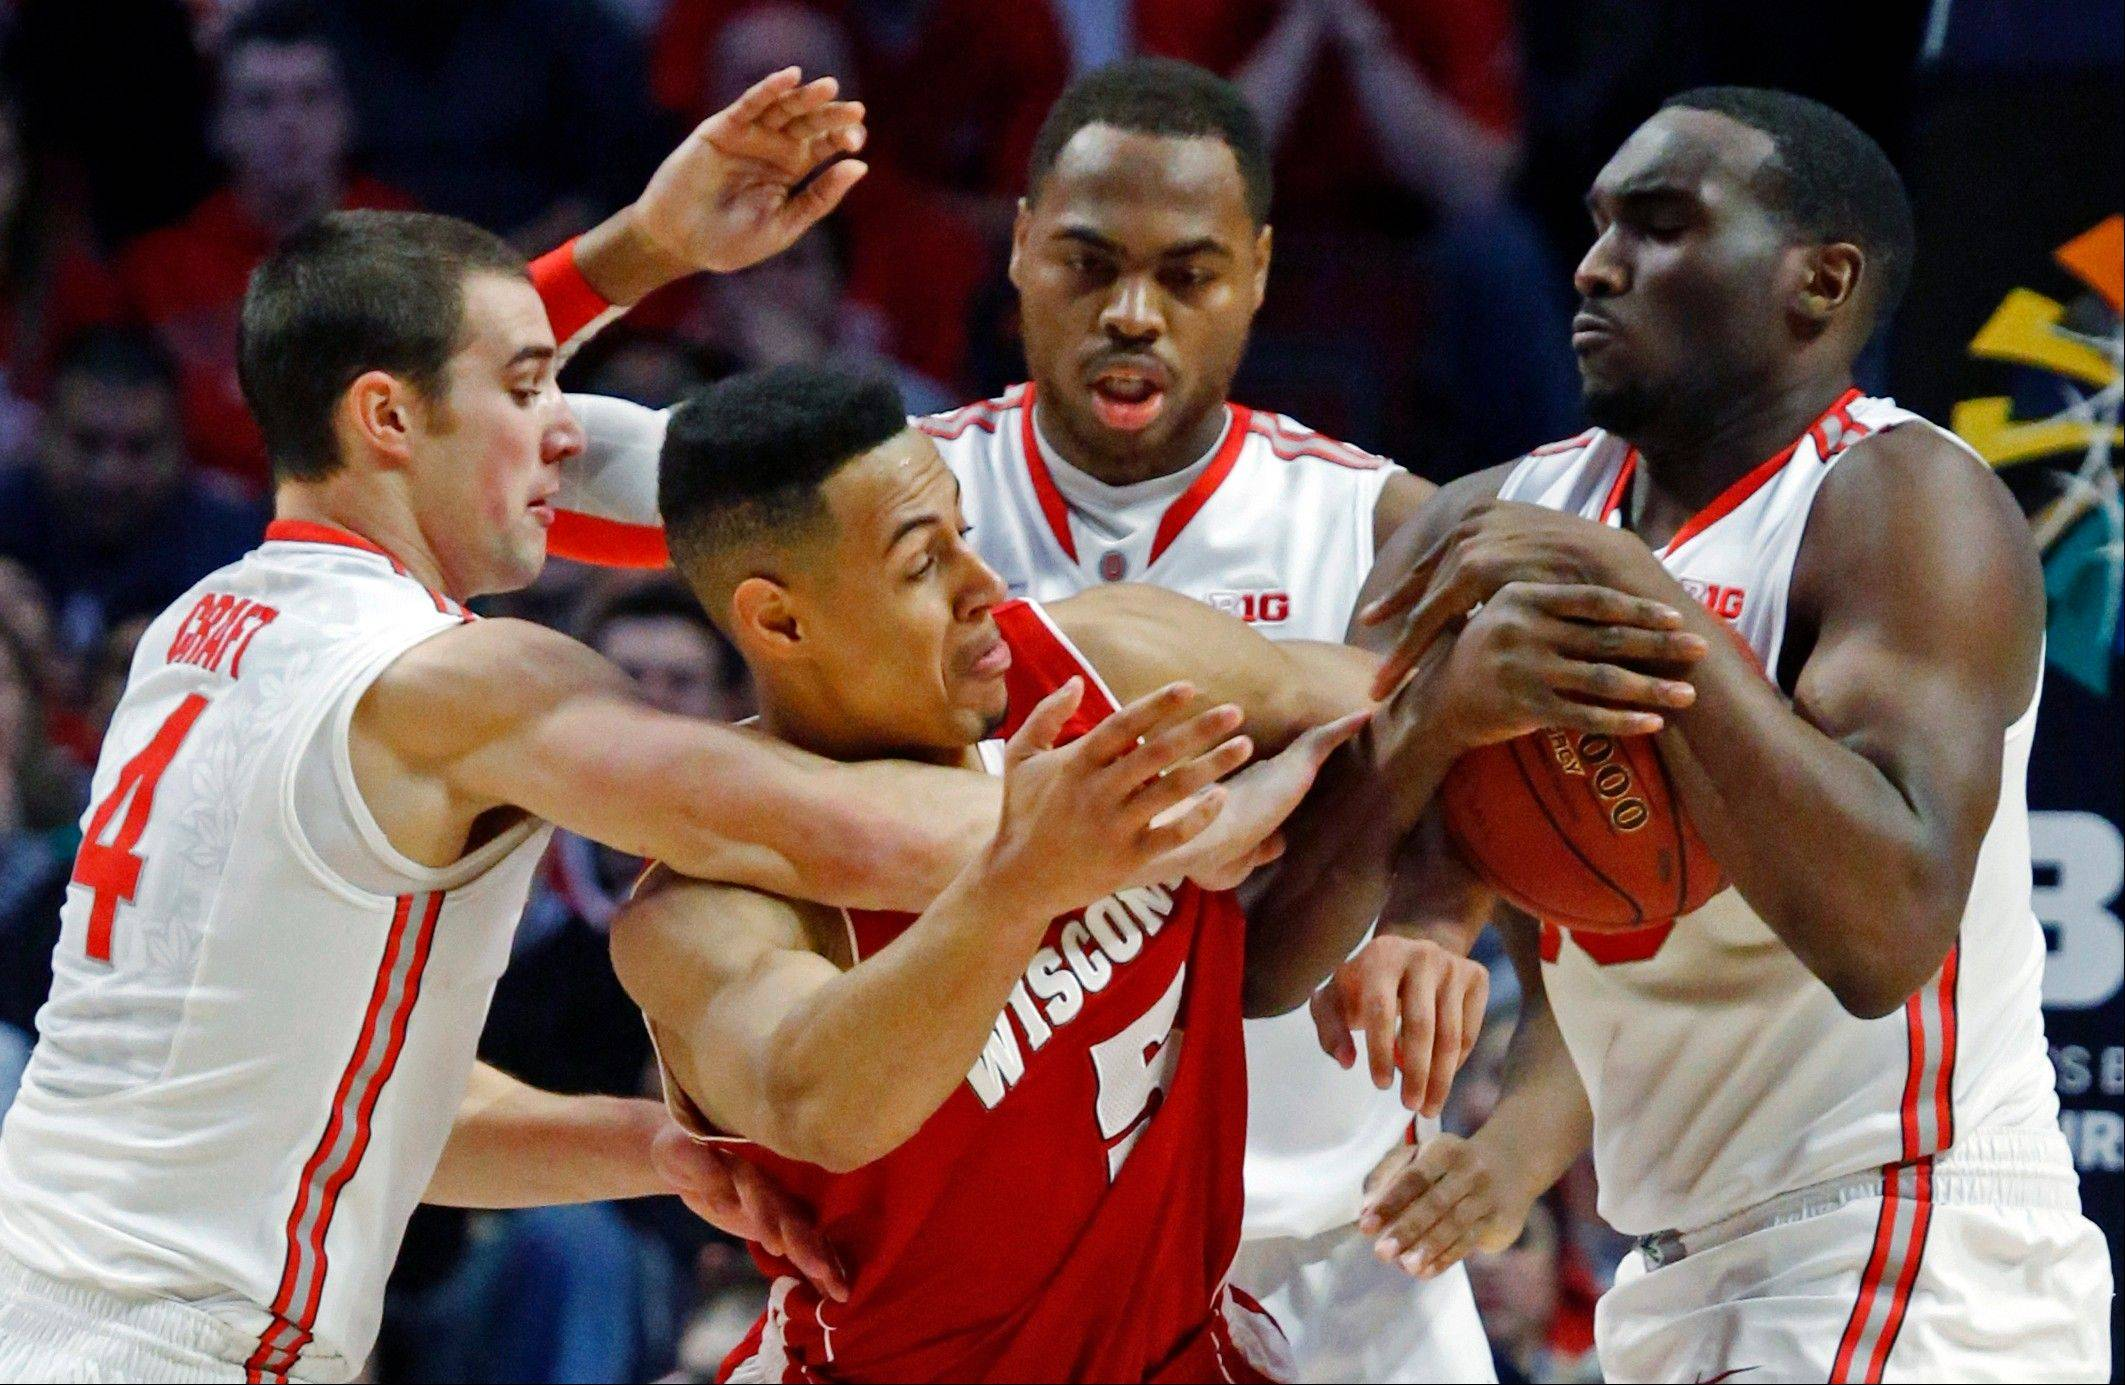 Ohio State forward Evan Ravenel, right, takes the ball away from Wisconsin's during the first half of the Buckeyes' win in the Big Ten tournament championship game Sunday. At left is guard Aaron Craft, and behind Evans is Deshaun Thomas.